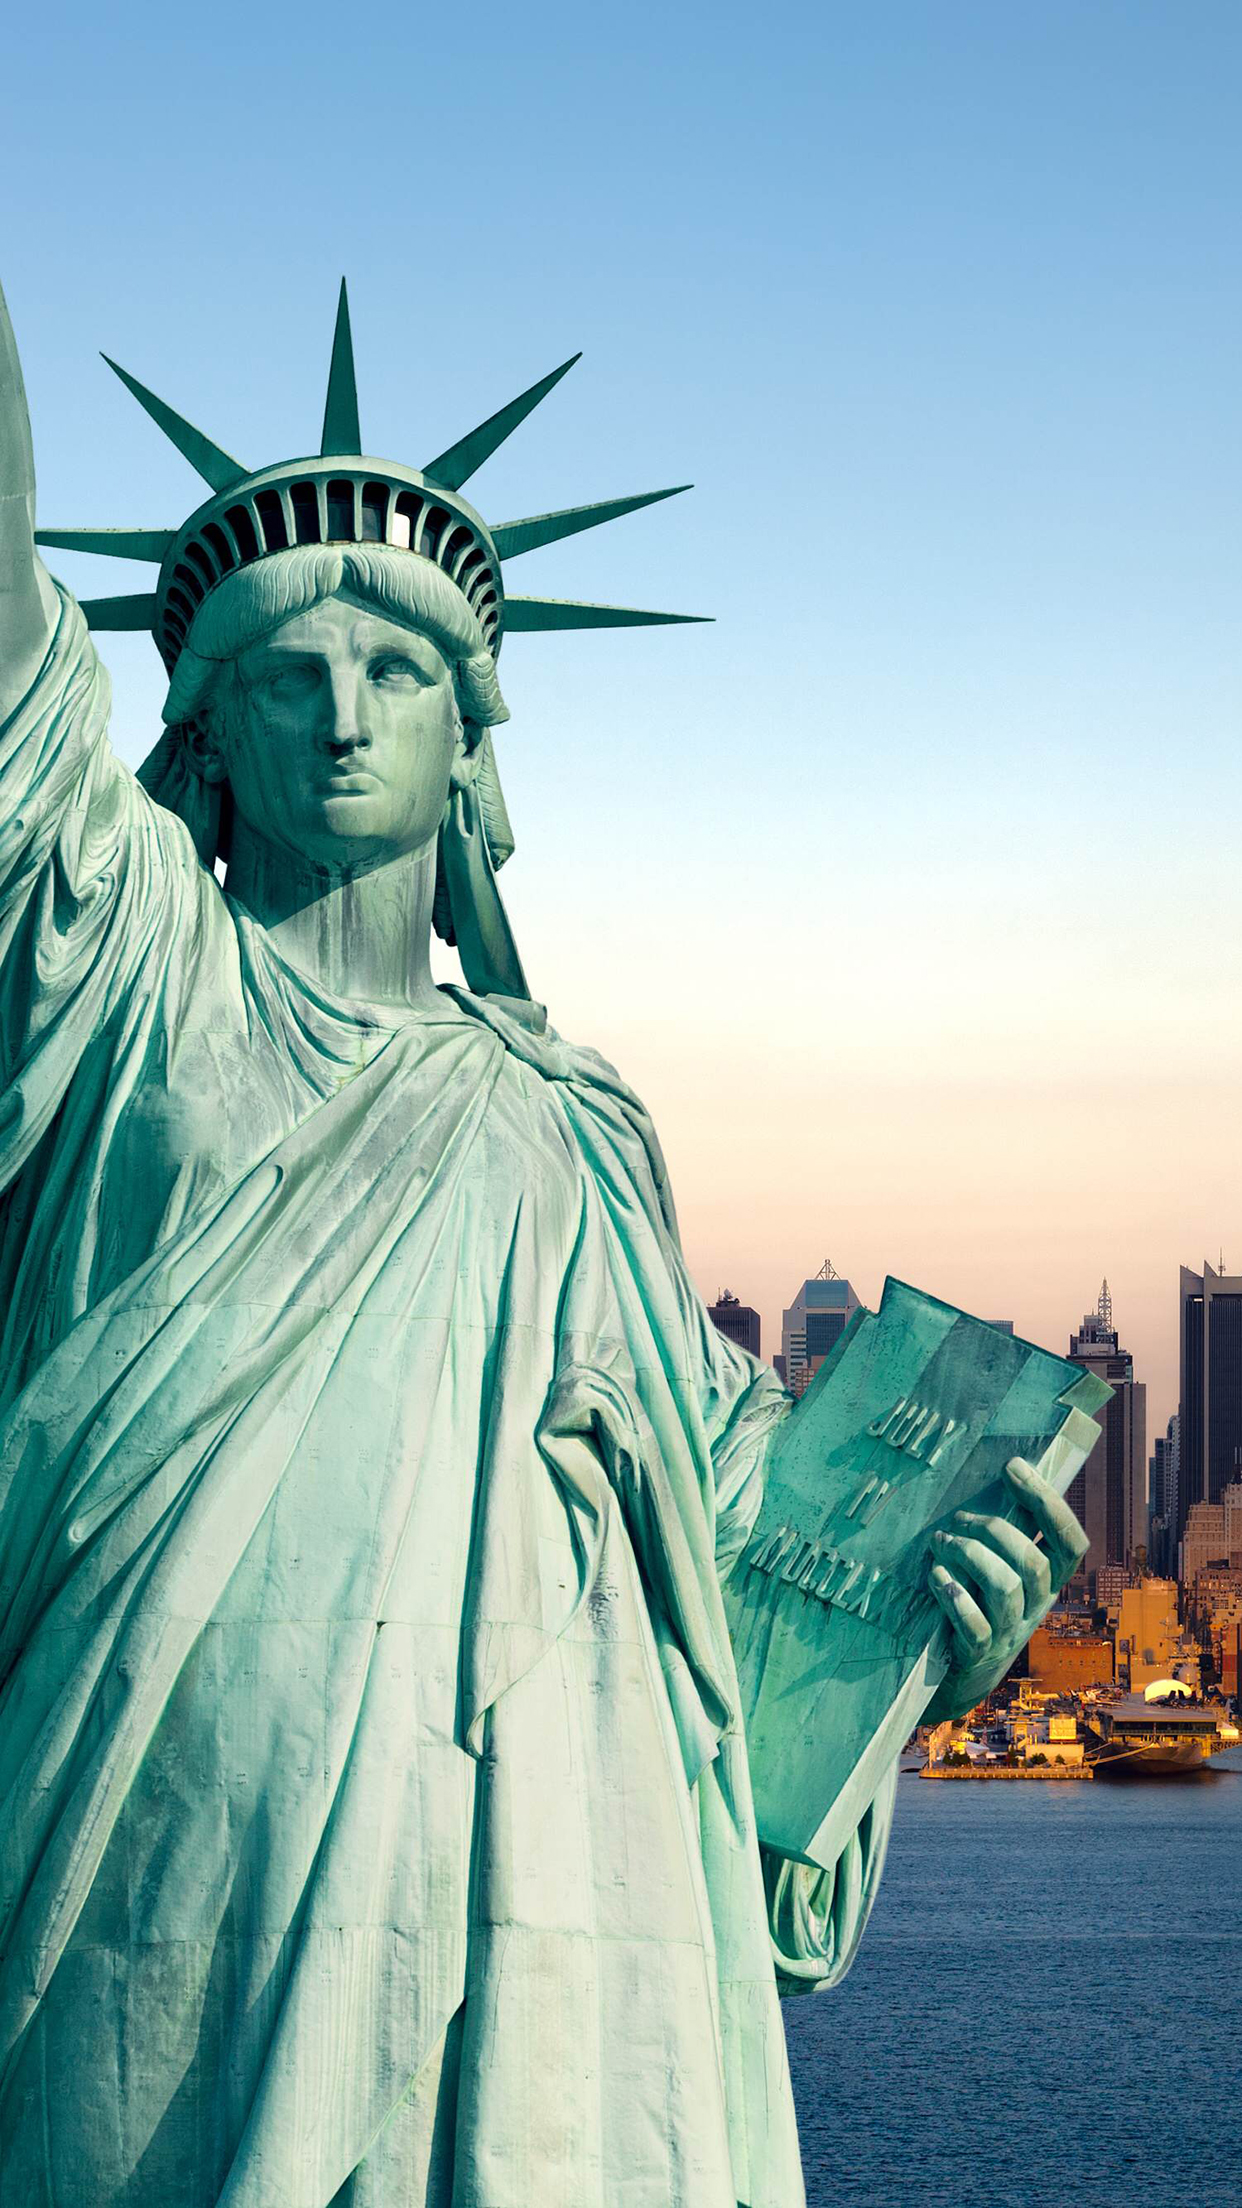 Monuments Liberty Statue 3Wallpapers iPhone Parallax Monuments Liberty Statue